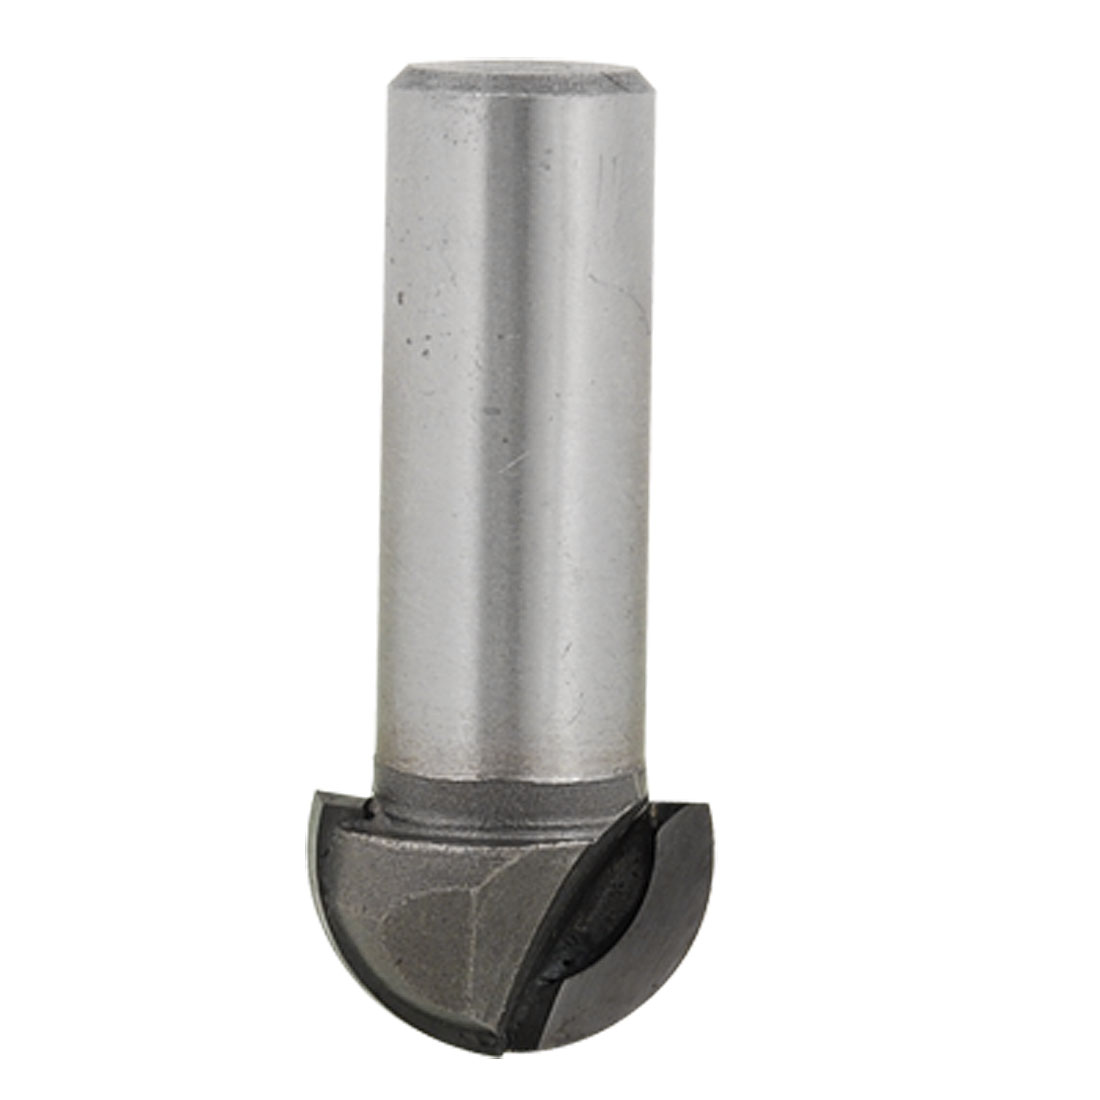 Silver Tone Steel Core Box Router Bit Cutter